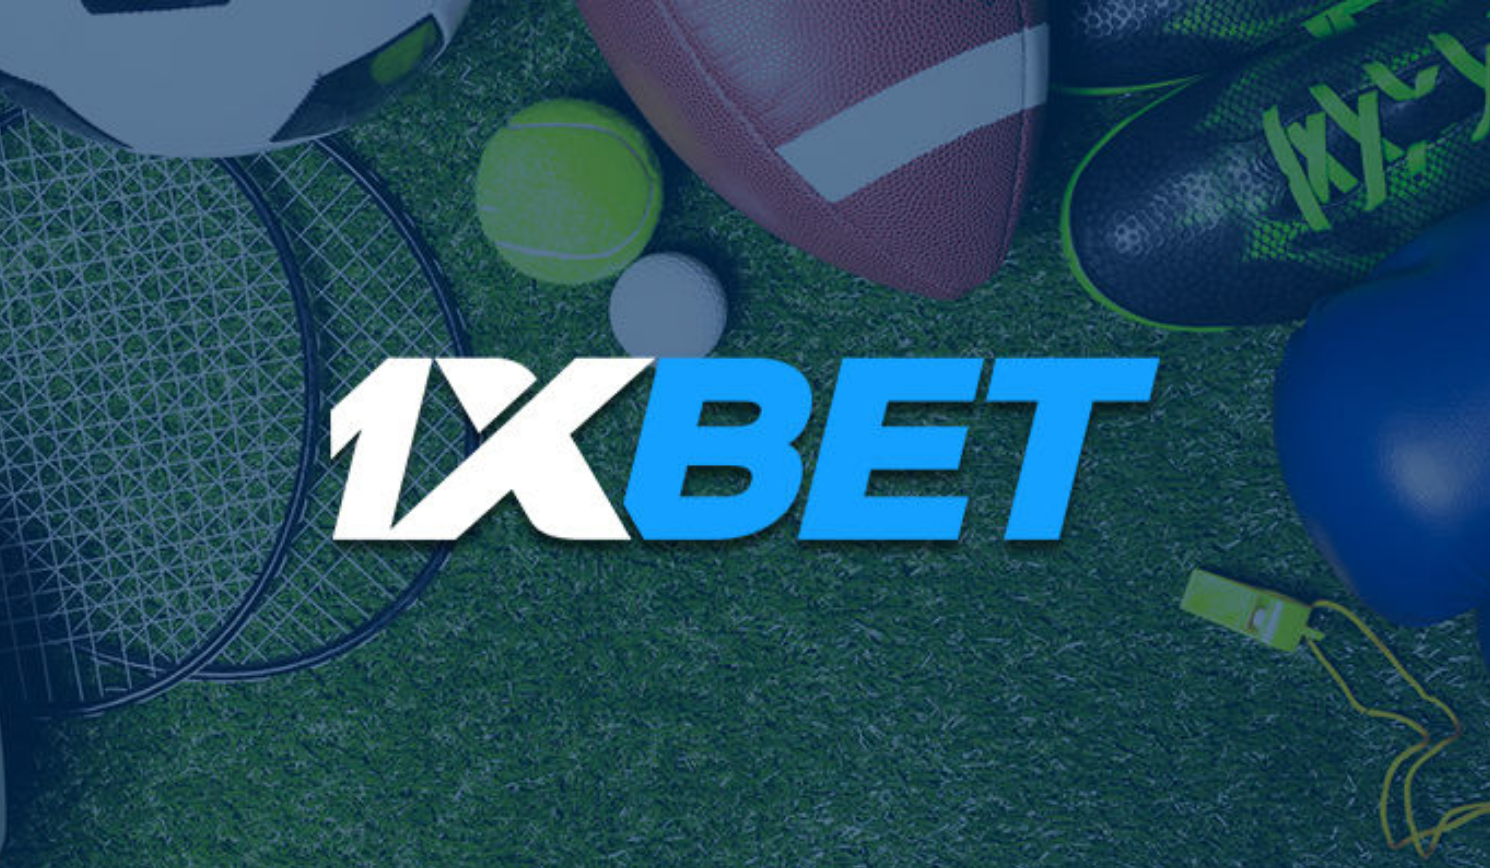 Where can gambler get the current 1xBet promotional code 2021?